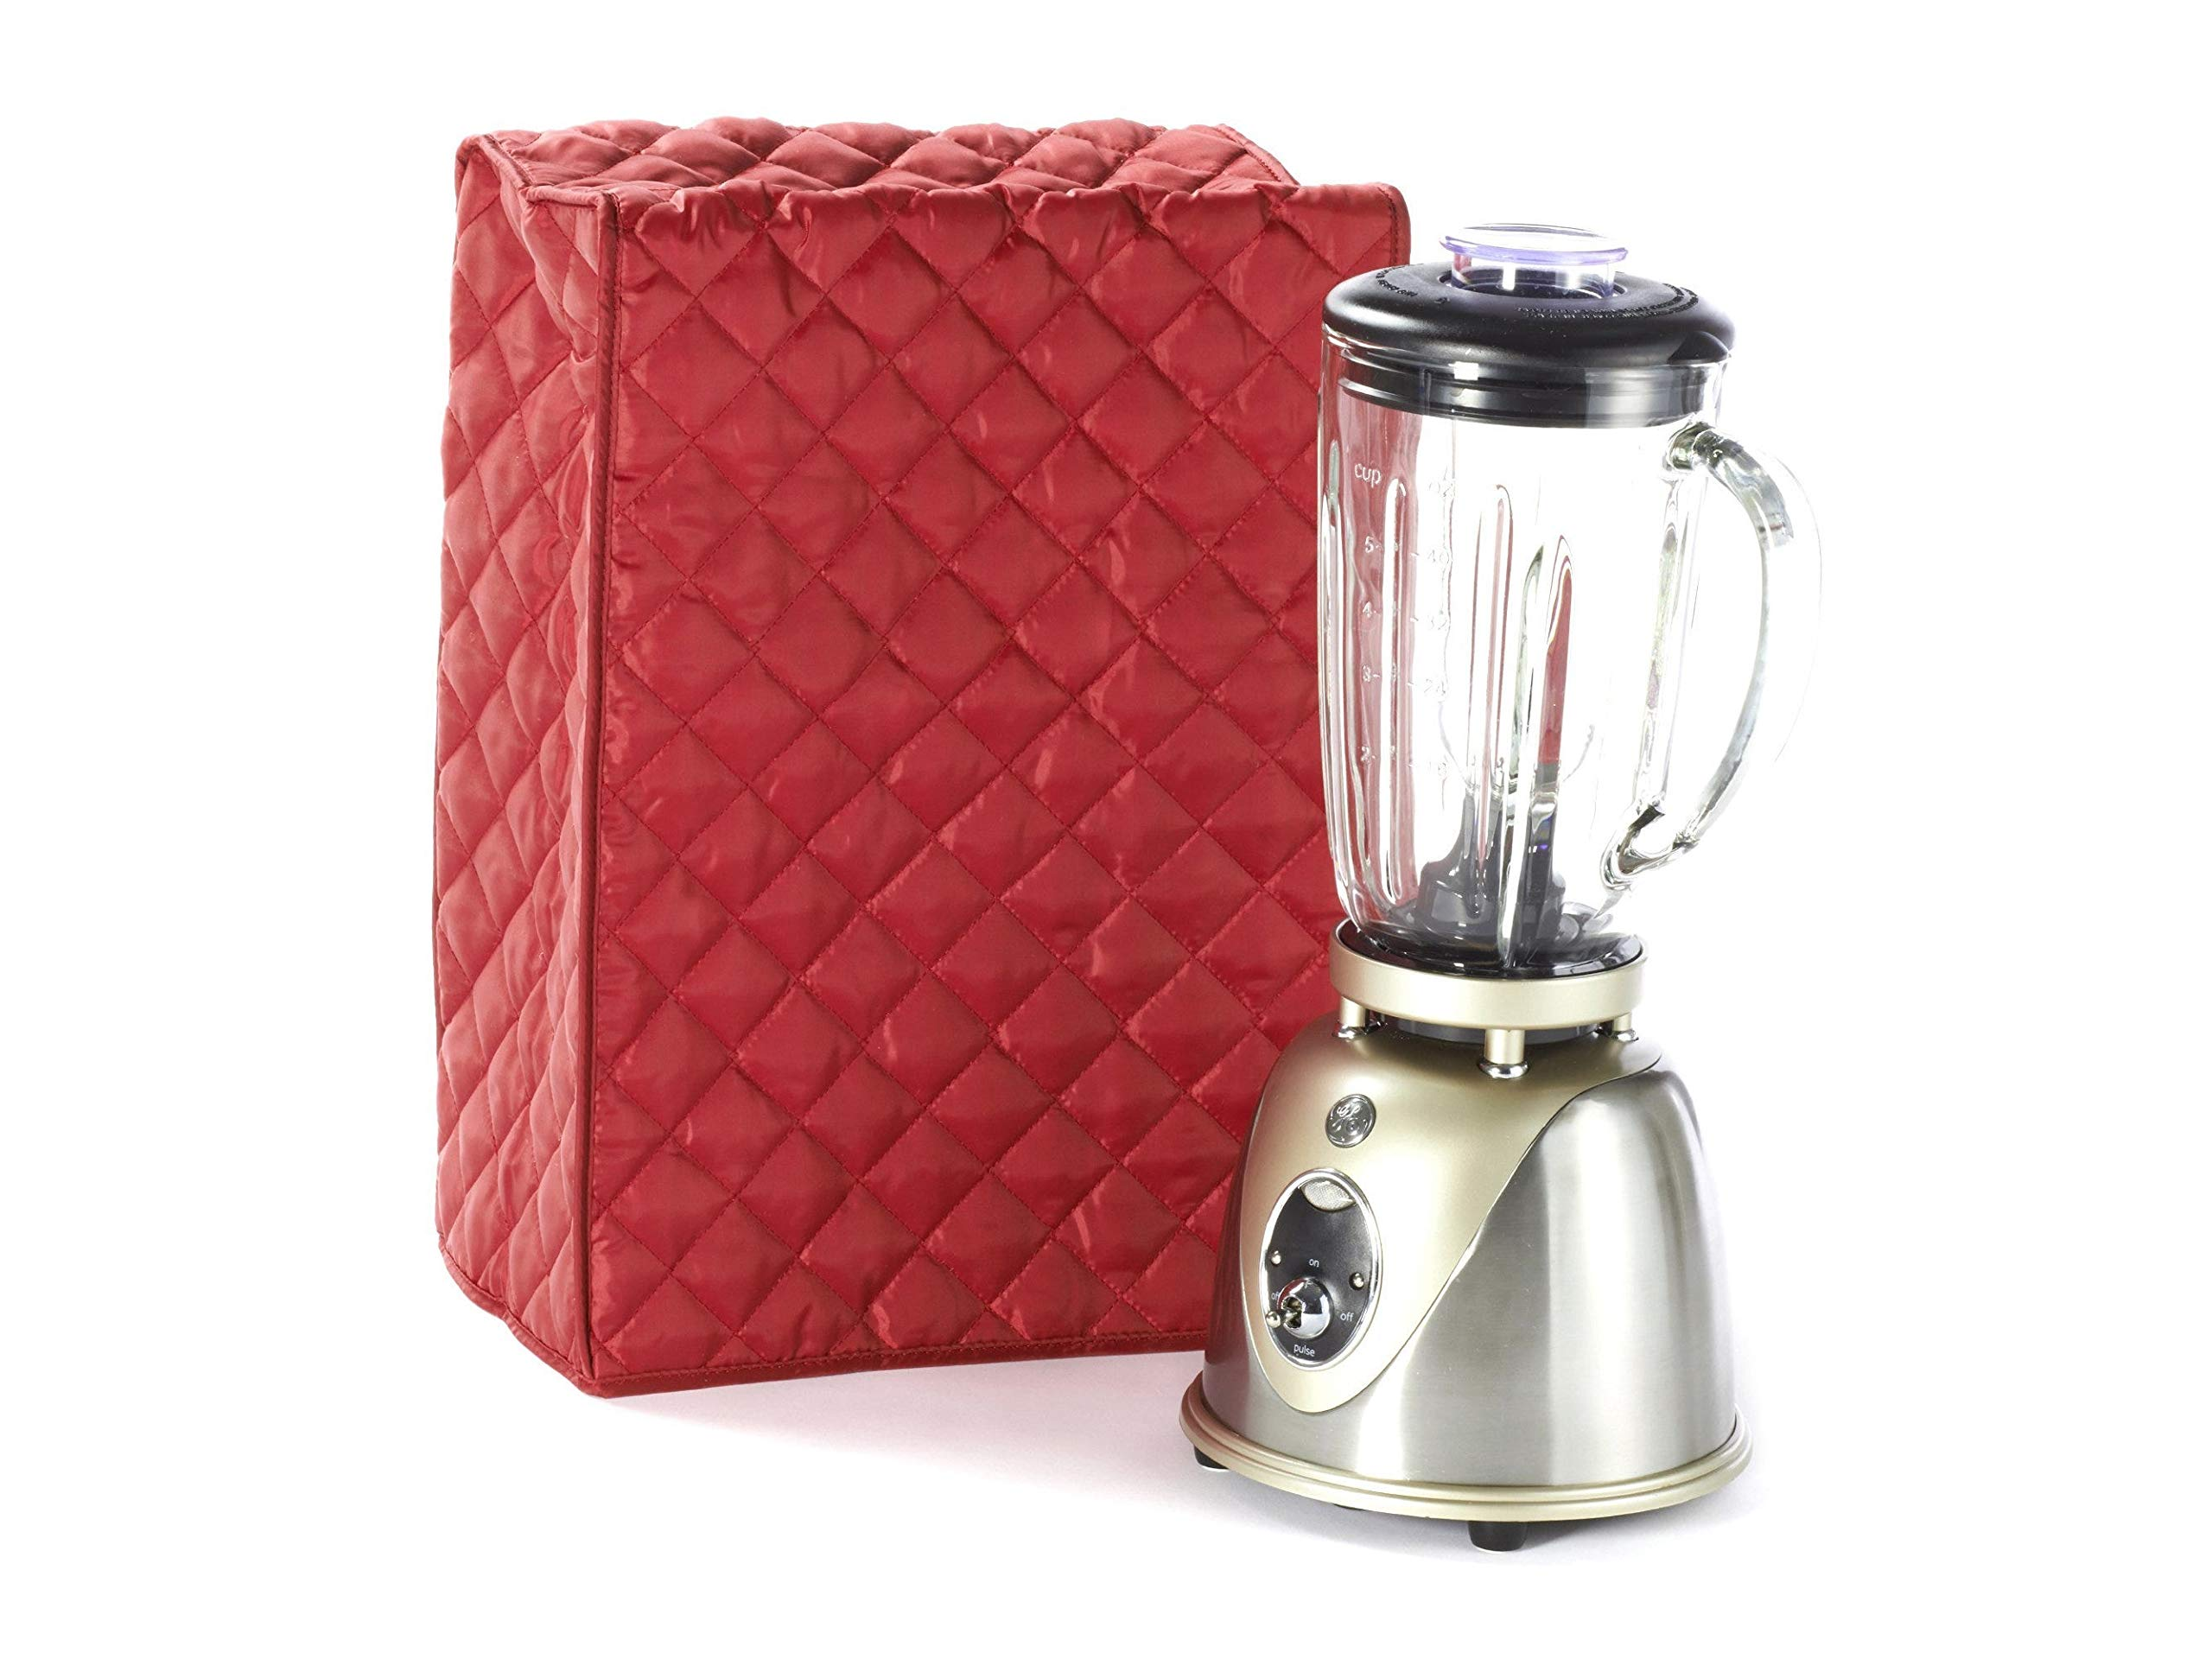 Covermates Keepsakes - Blender Cover – Dust Protection - Stain Resistant - Washable – Appliance Cover - Red